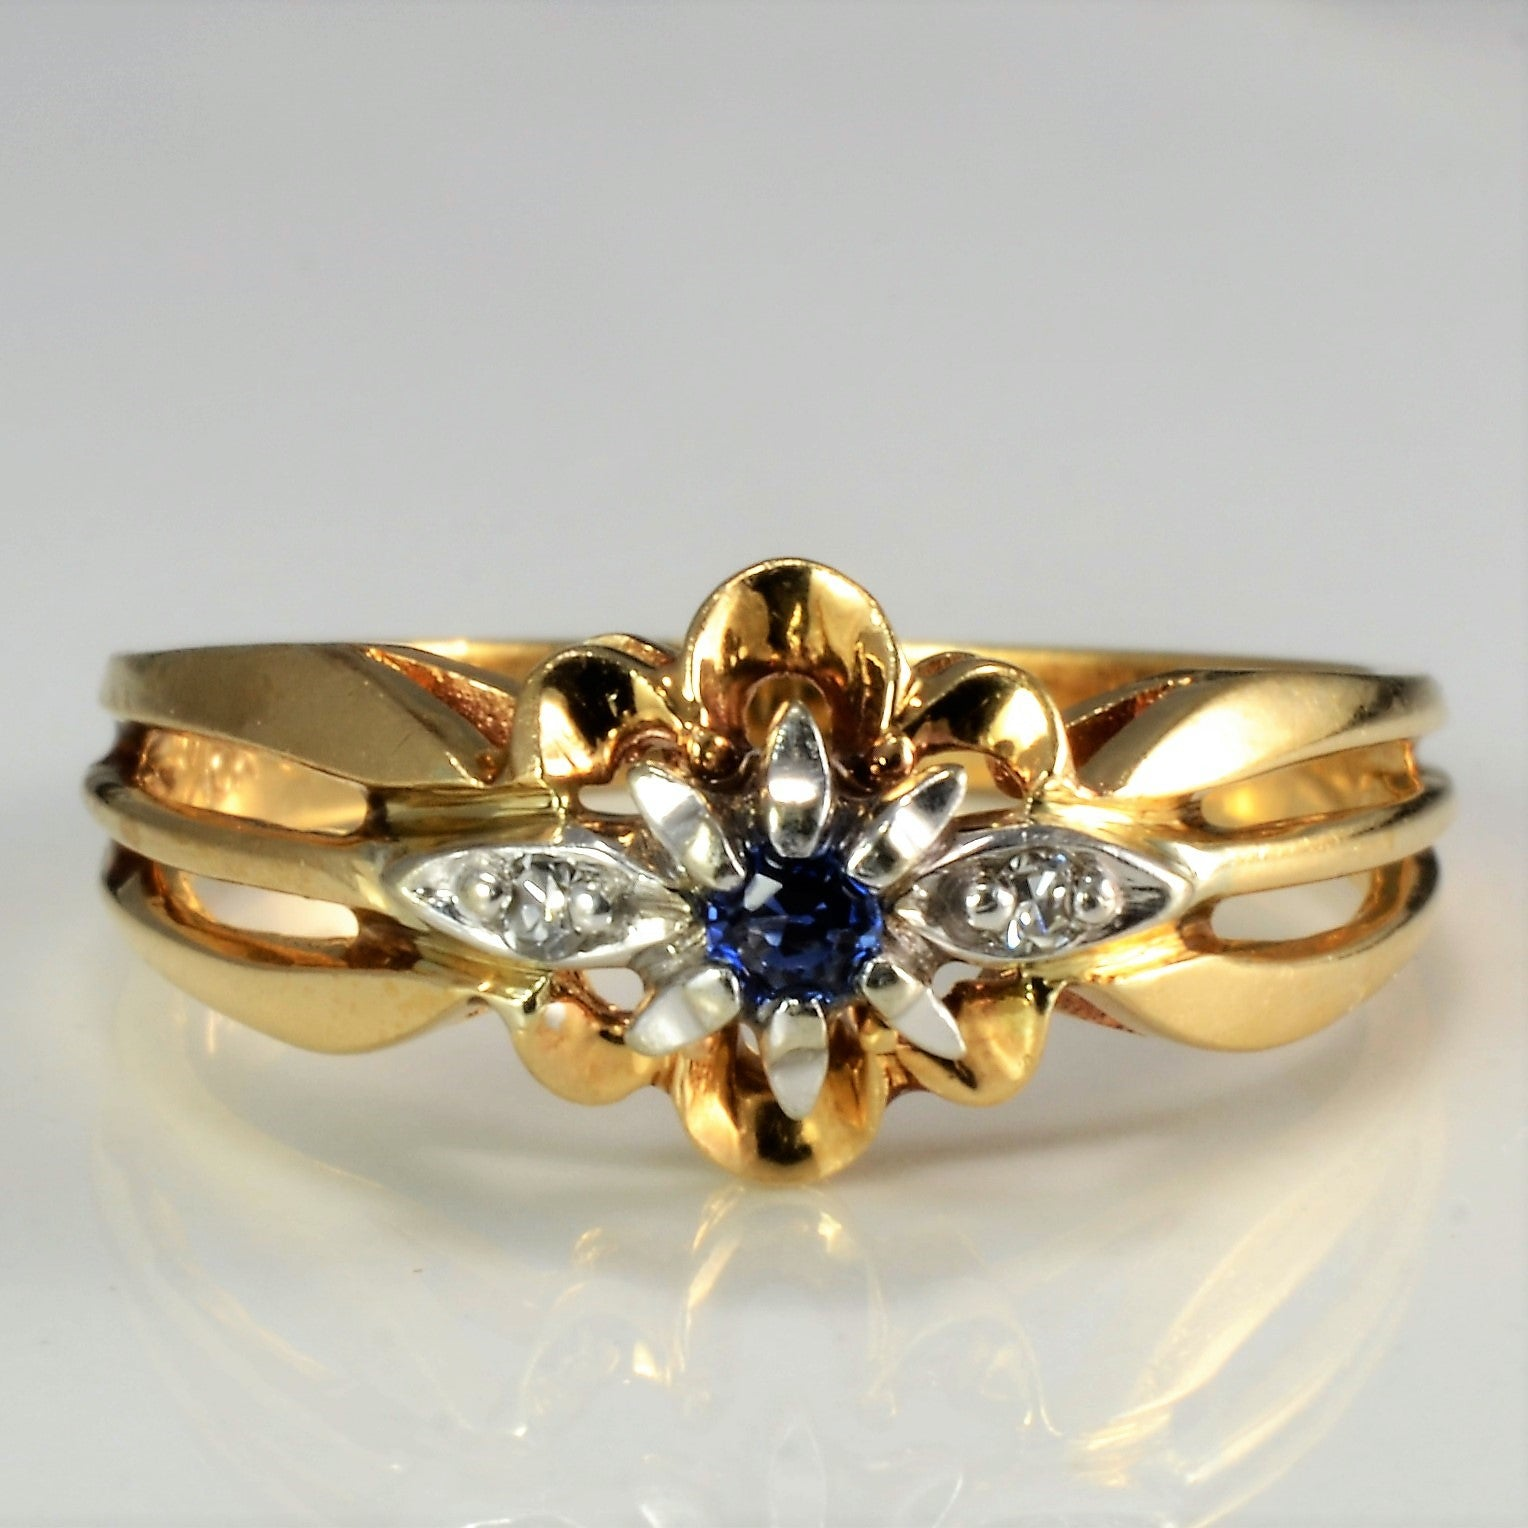 Floral Inspired Sapphire & Diamond Ring | 0.02 ctw, SZ 6.25 |